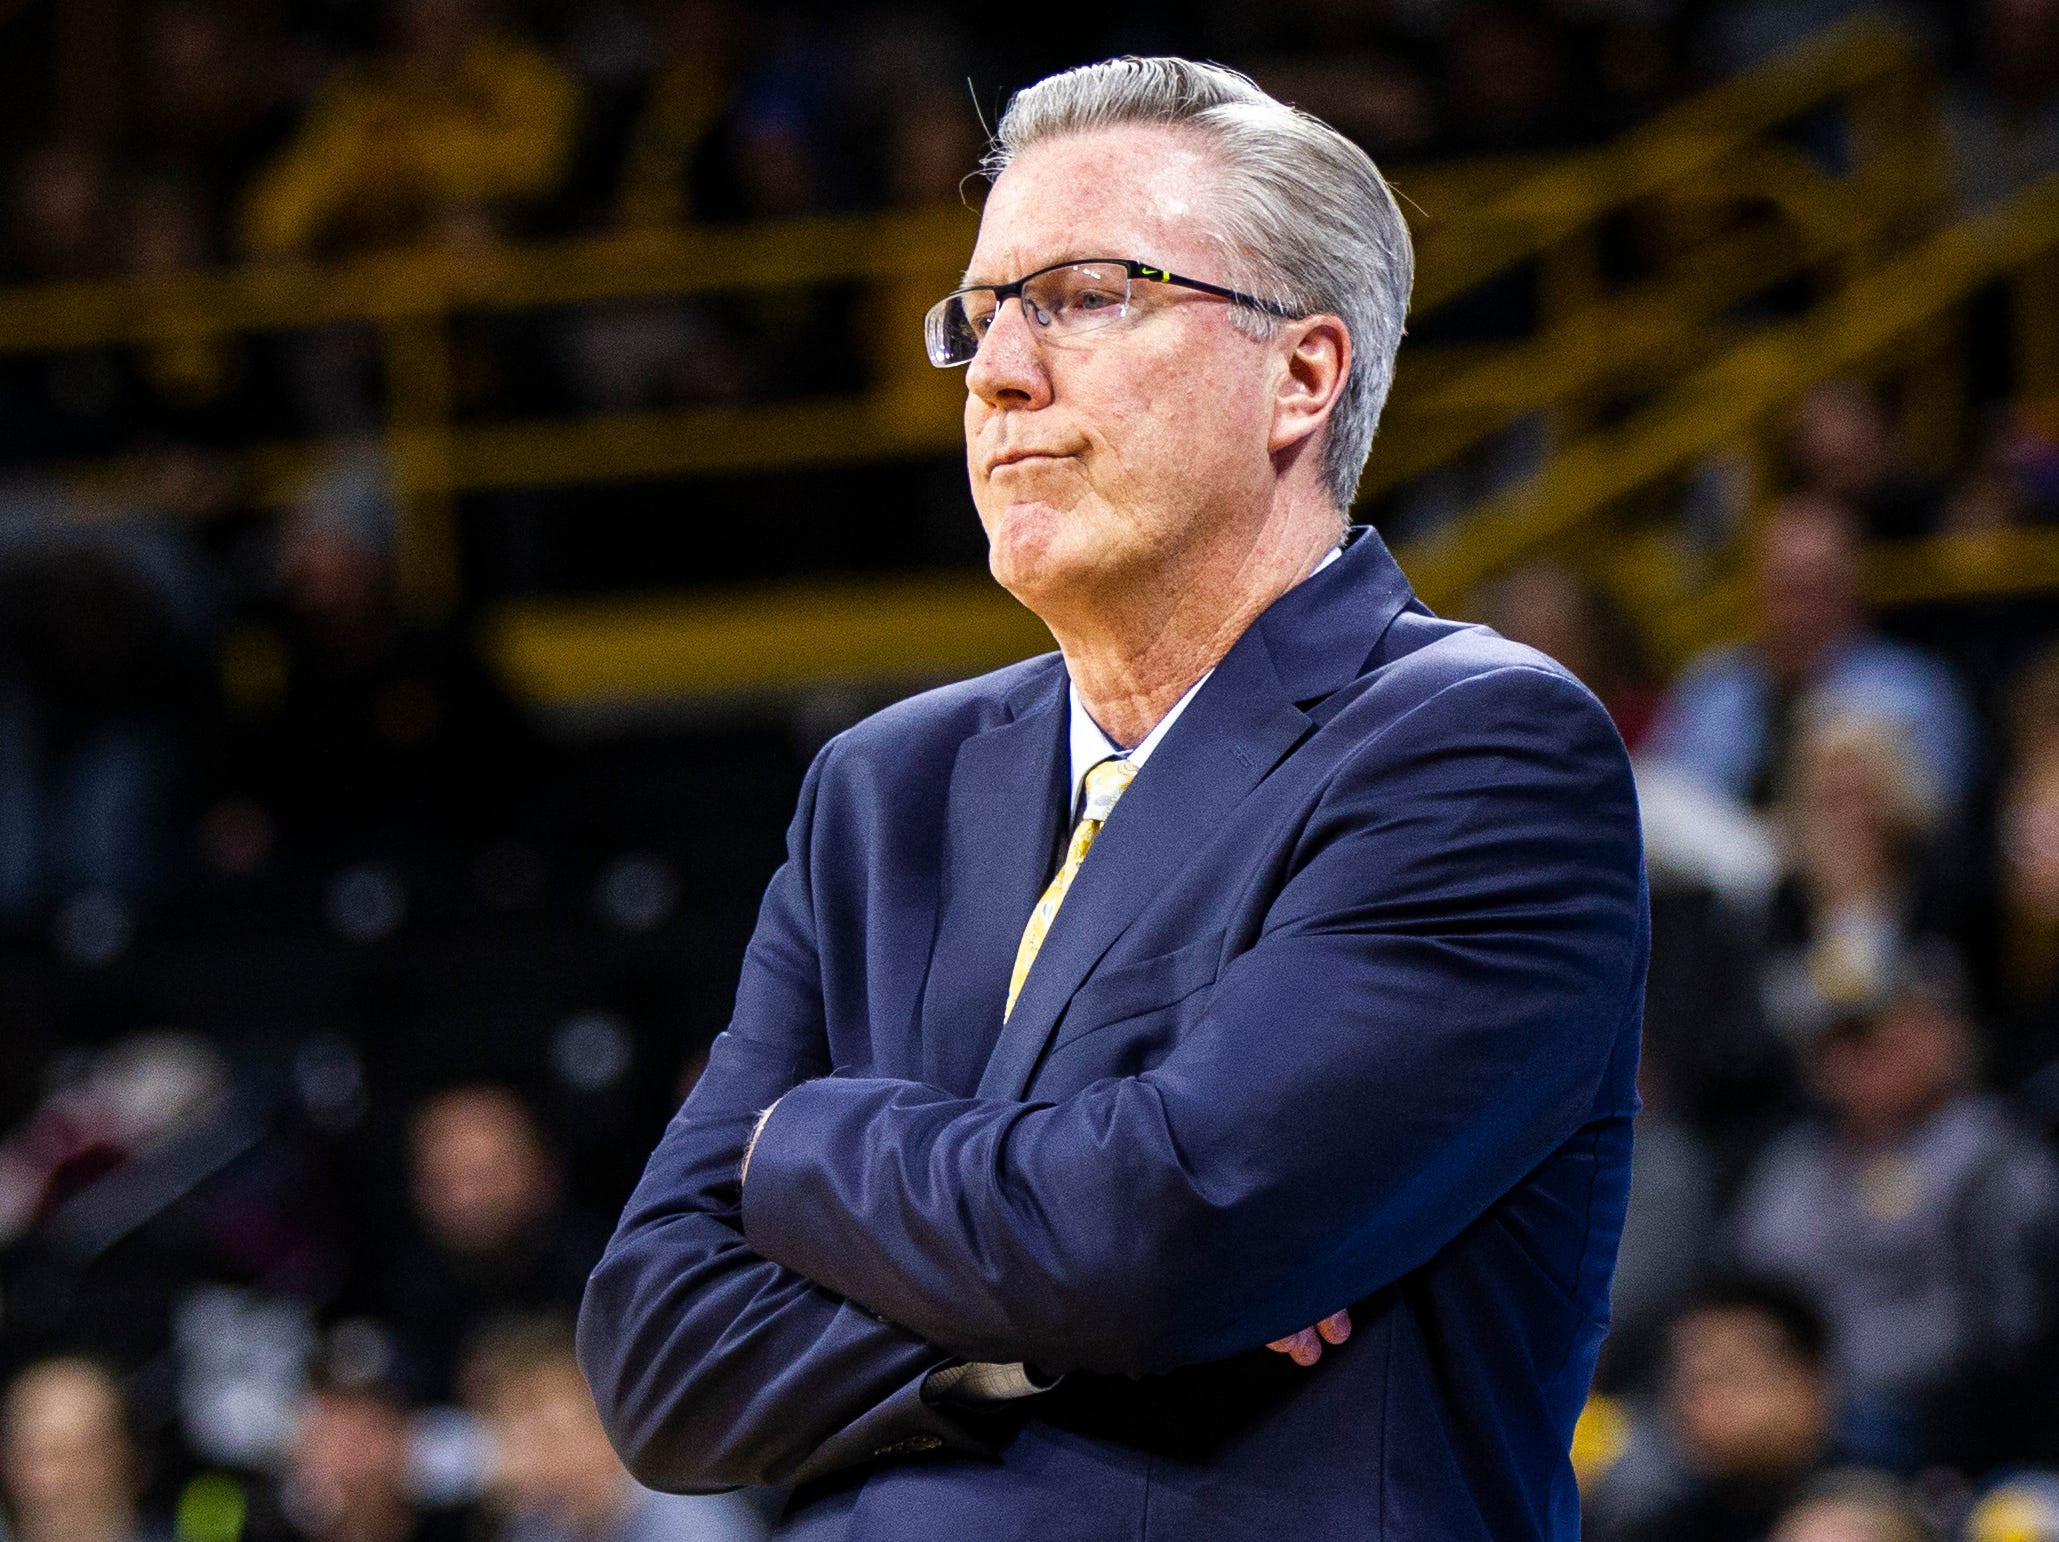 Iowa head coach Fran McCaffery crosses his arms during a NCAA men's basketball game on Saturday, Dec. 29, 2018, at Carver-Hawkeye Arena in Iowa City.